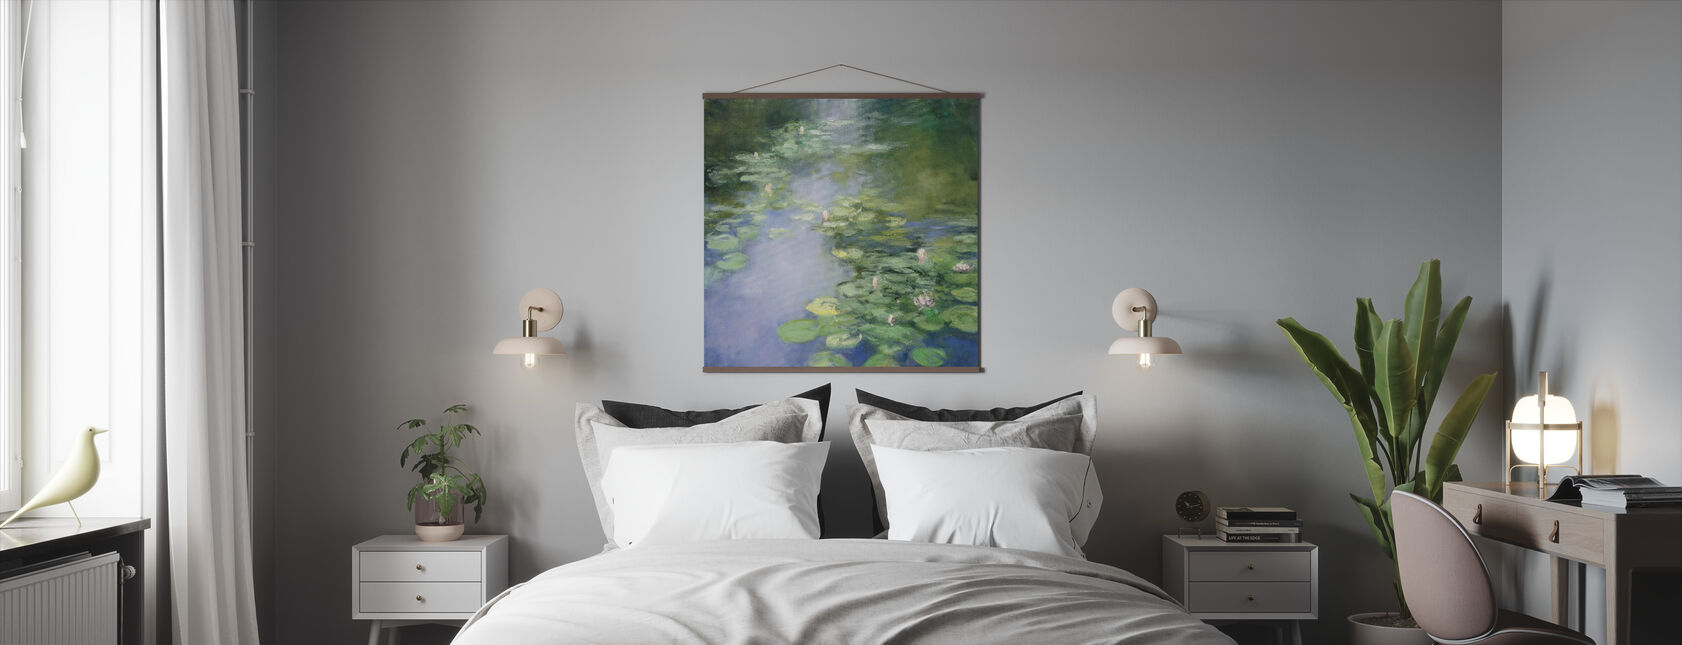 Blue Lily II - Poster - Bedroom